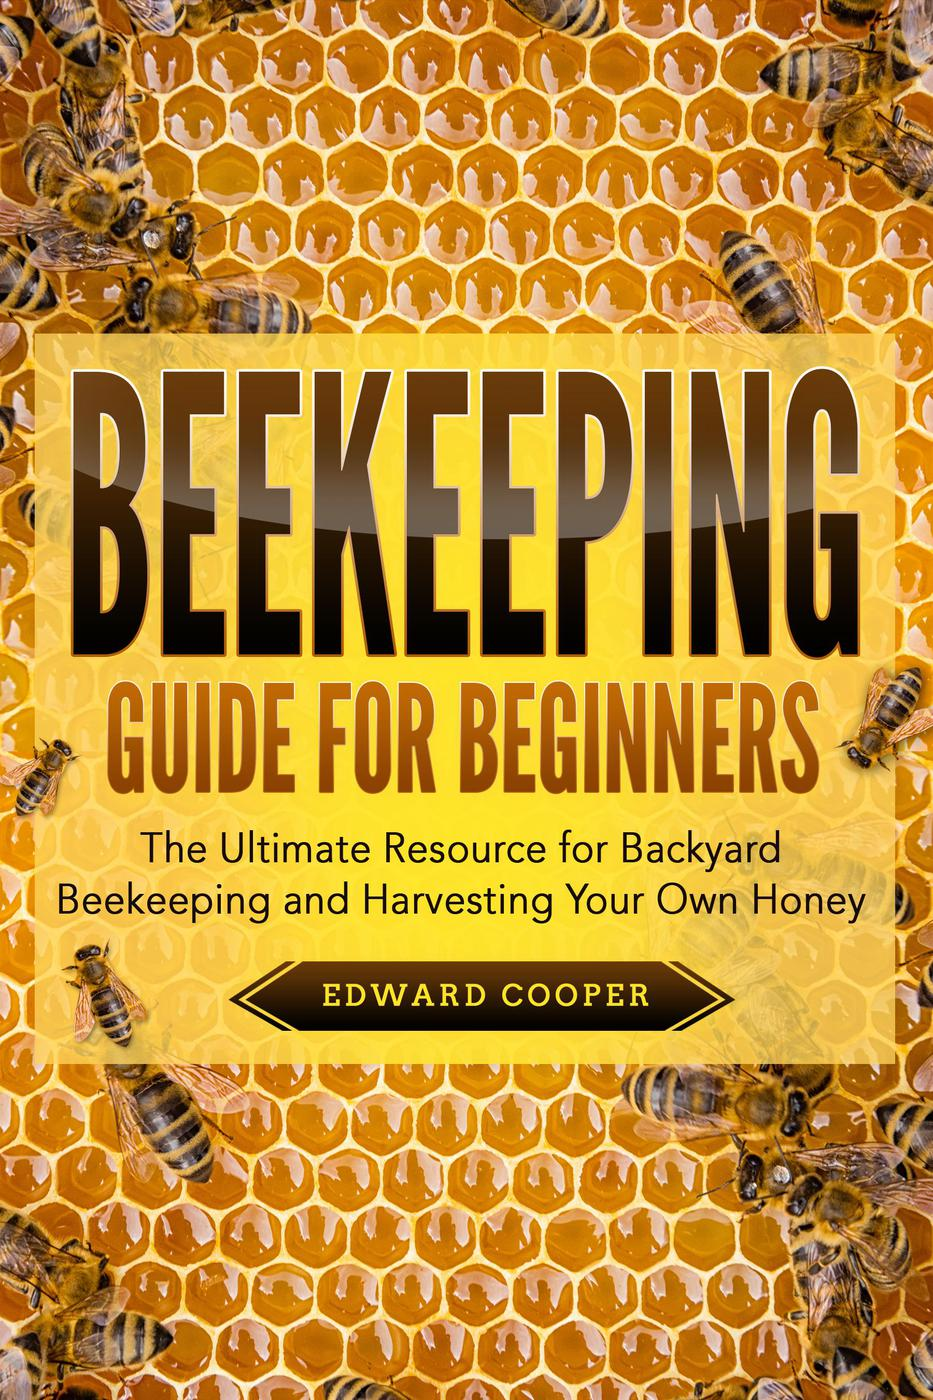 Beekeeping Guide for Beginners: The Ultimate Resource for Backyard Beekeeping and Harvesting Your Own Honey